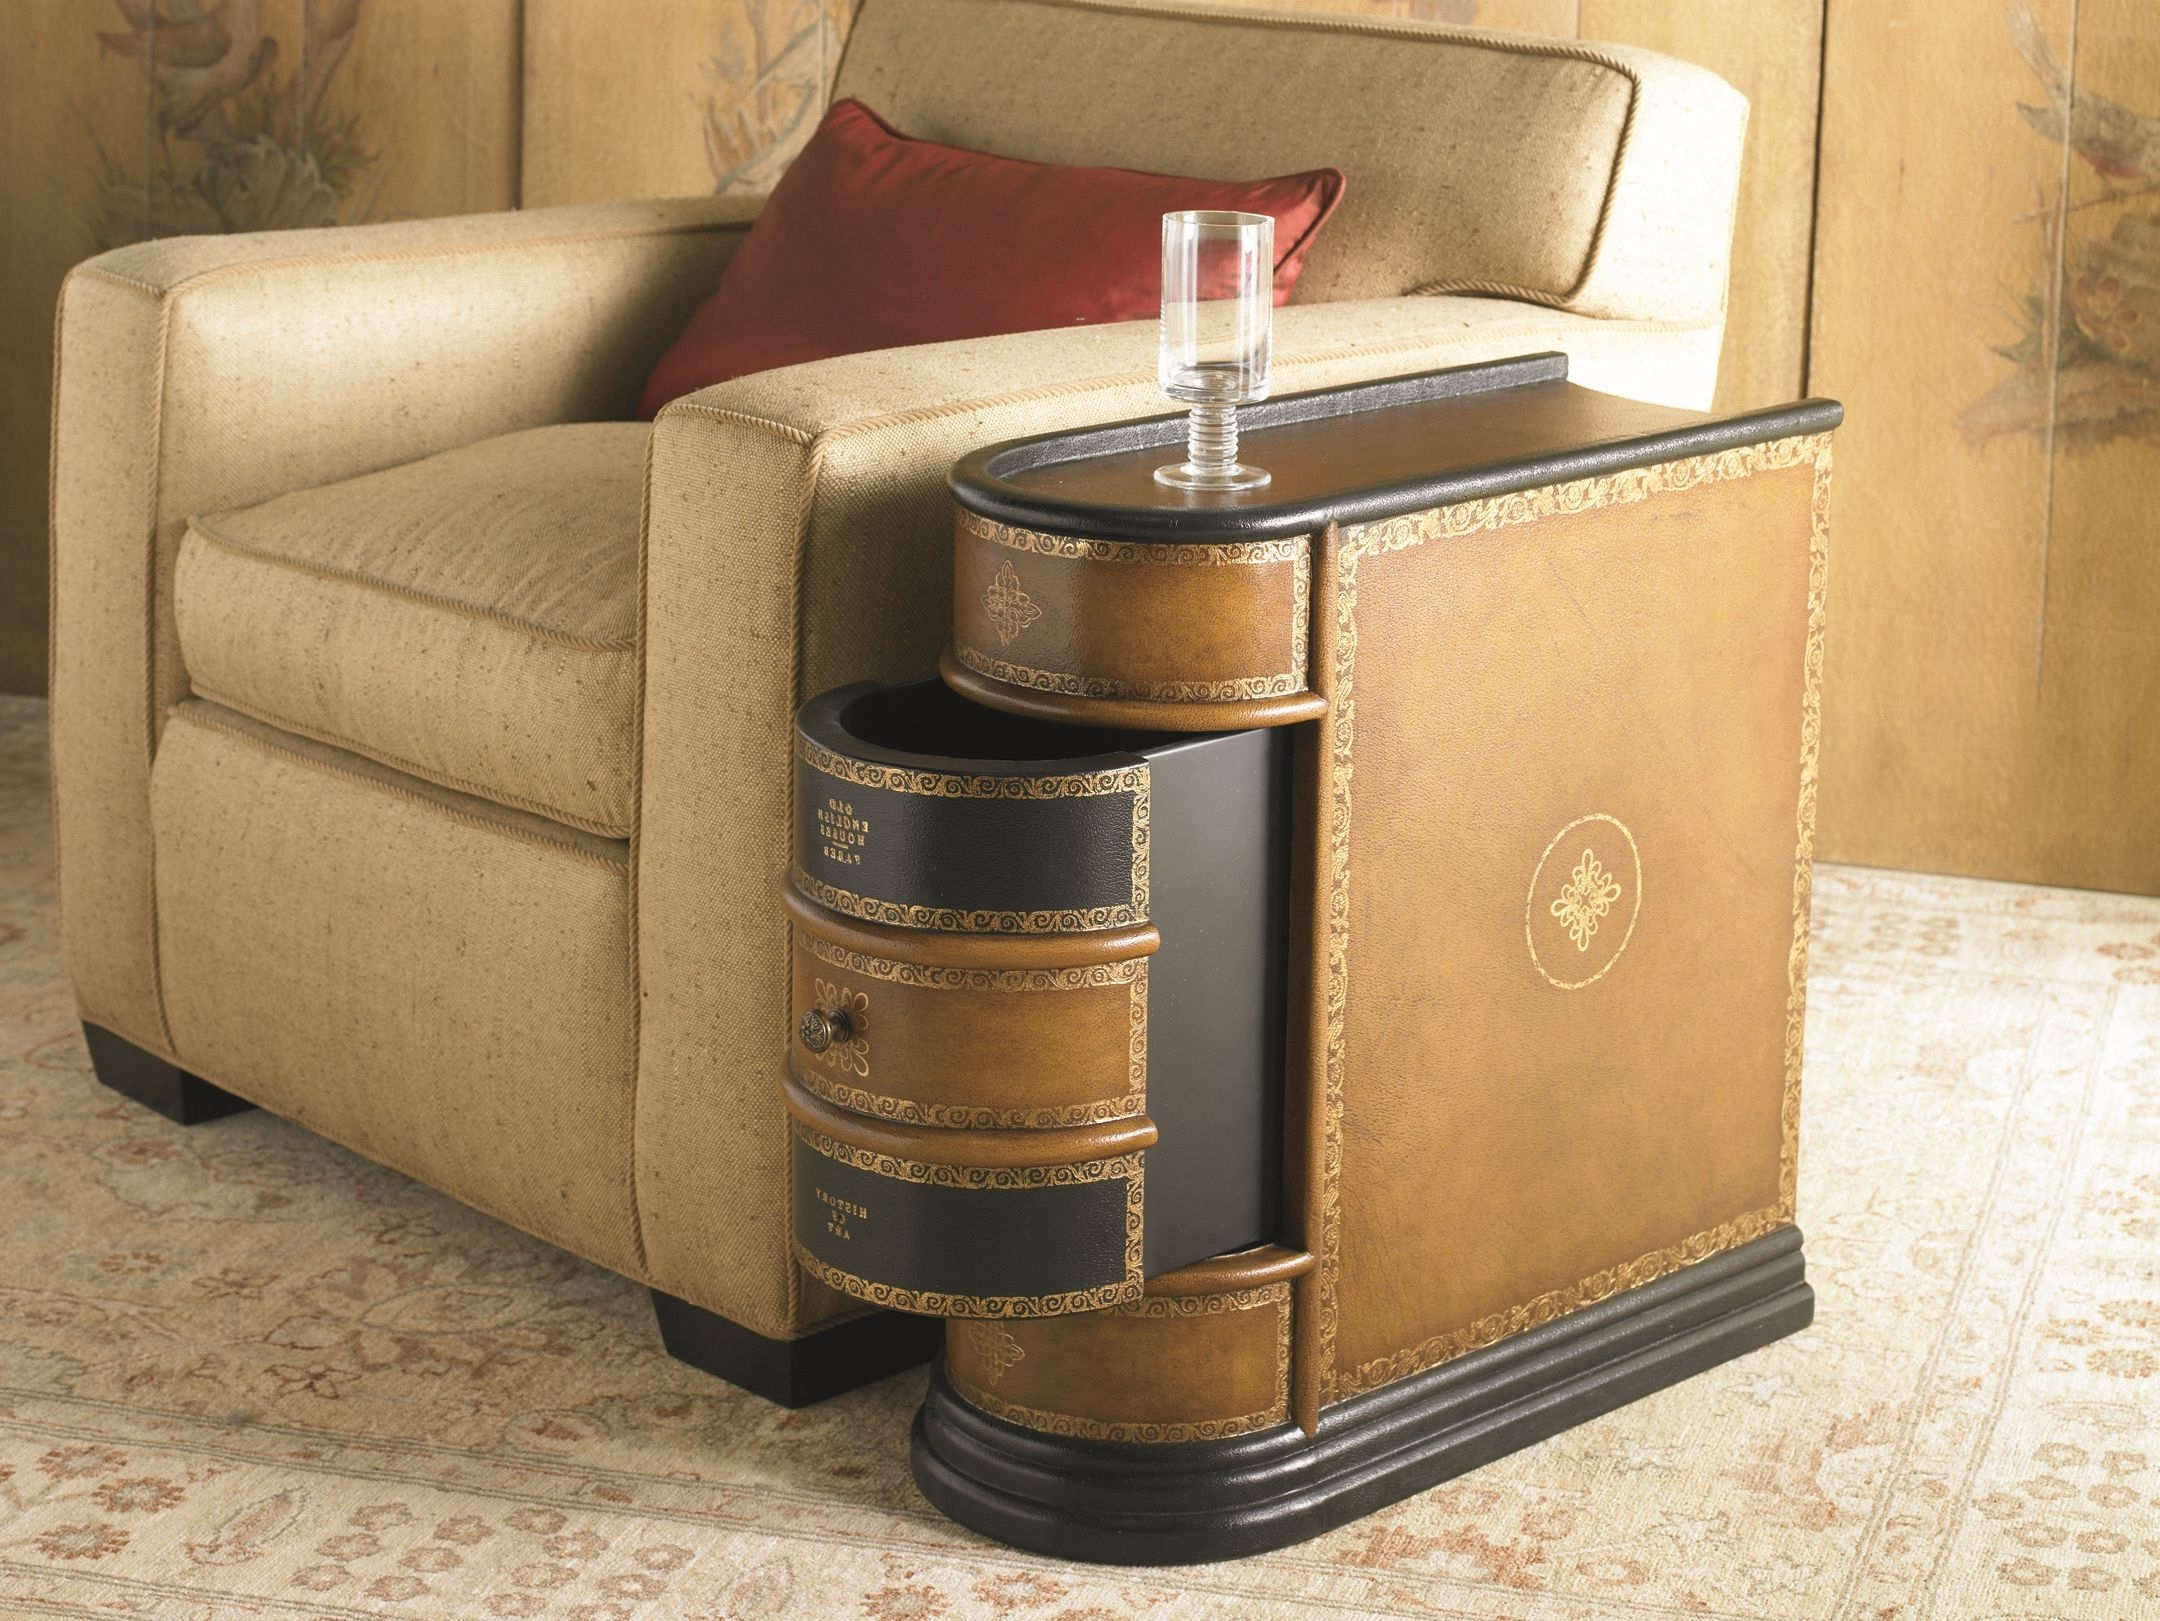 coffee accent tables side for small spaces dark brown luxurious wood table with drawers storage function living room space beige light fabric cushion chair base and legs red silky